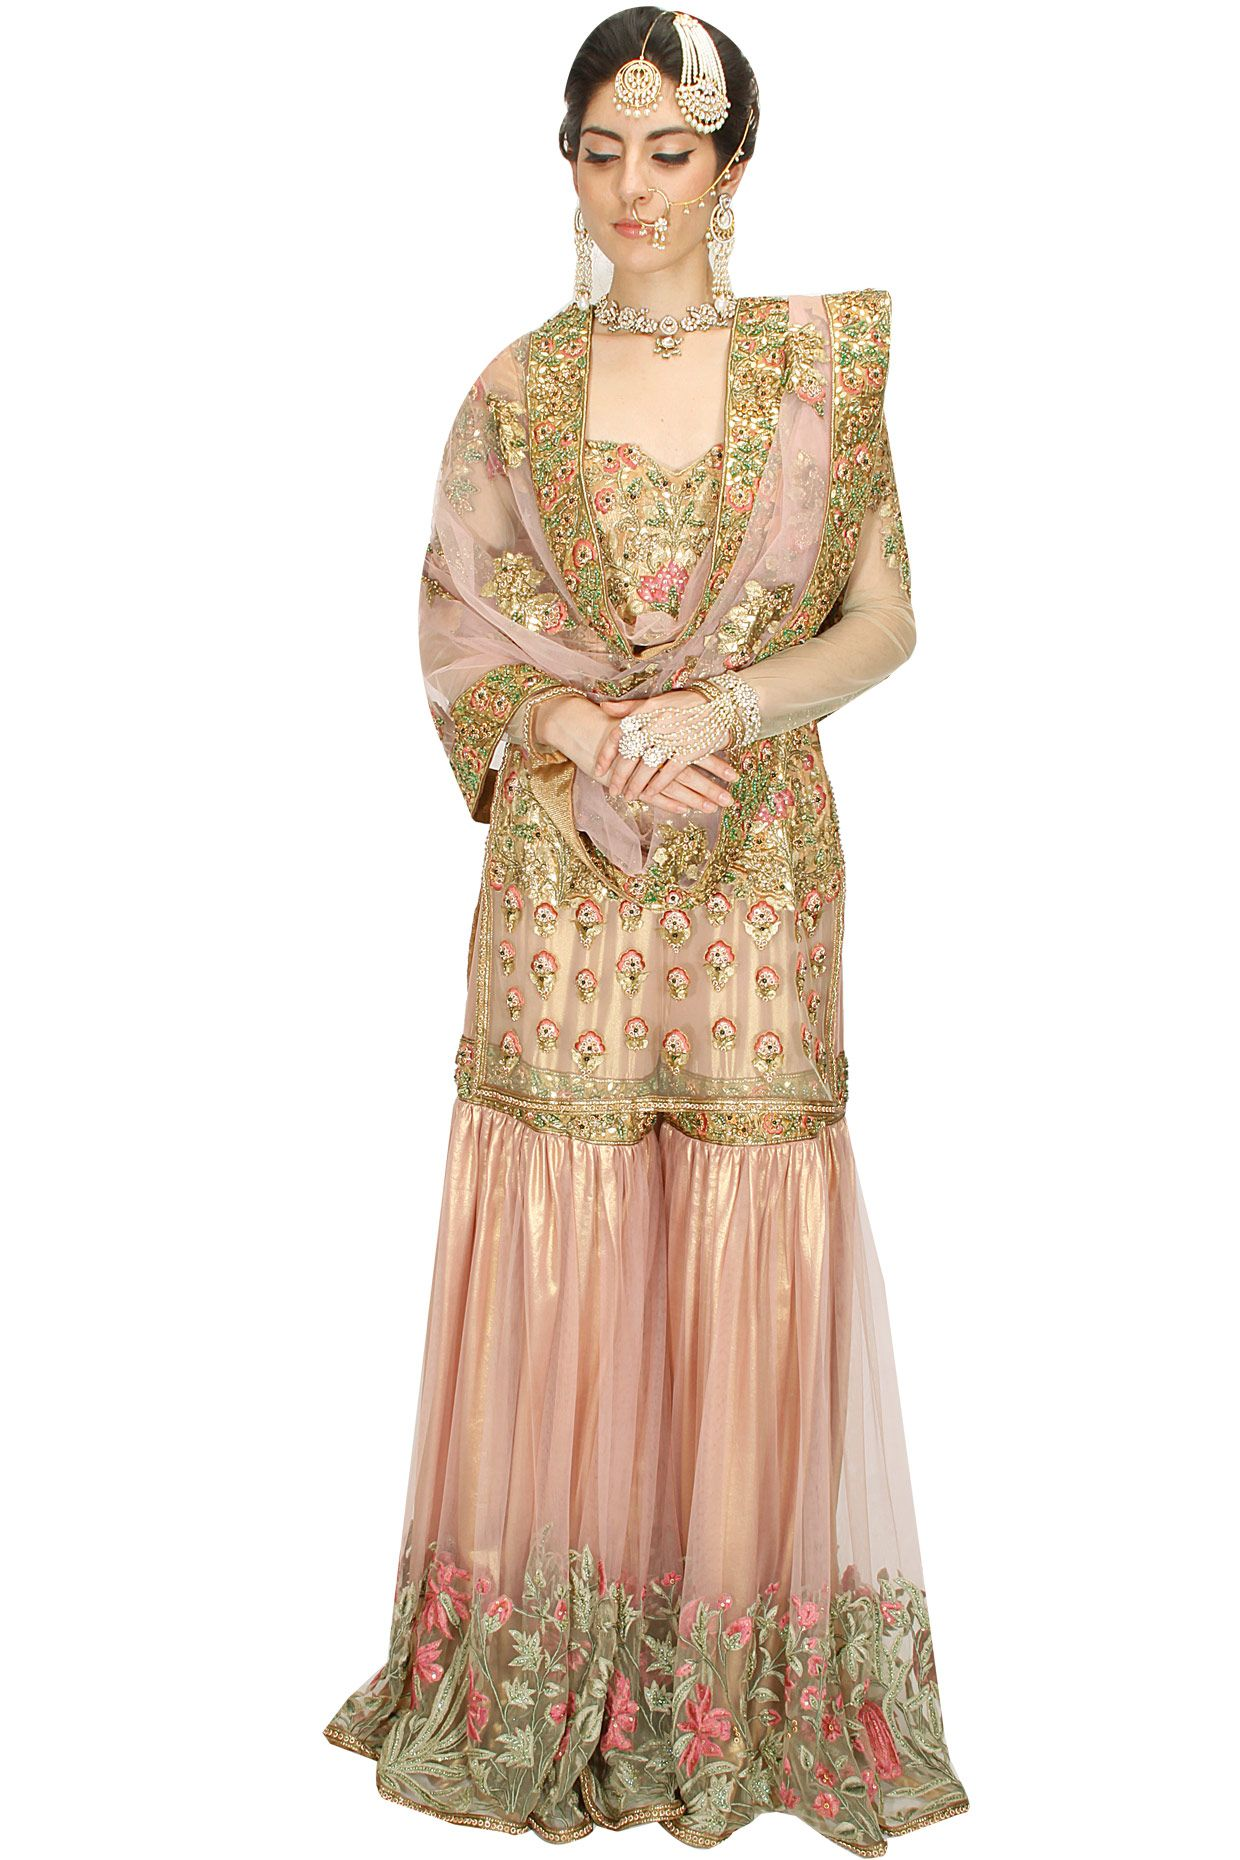 Pernia\'s Pop-Up Shop | My Pretty Bride | Pinterest | Muslim brides ...